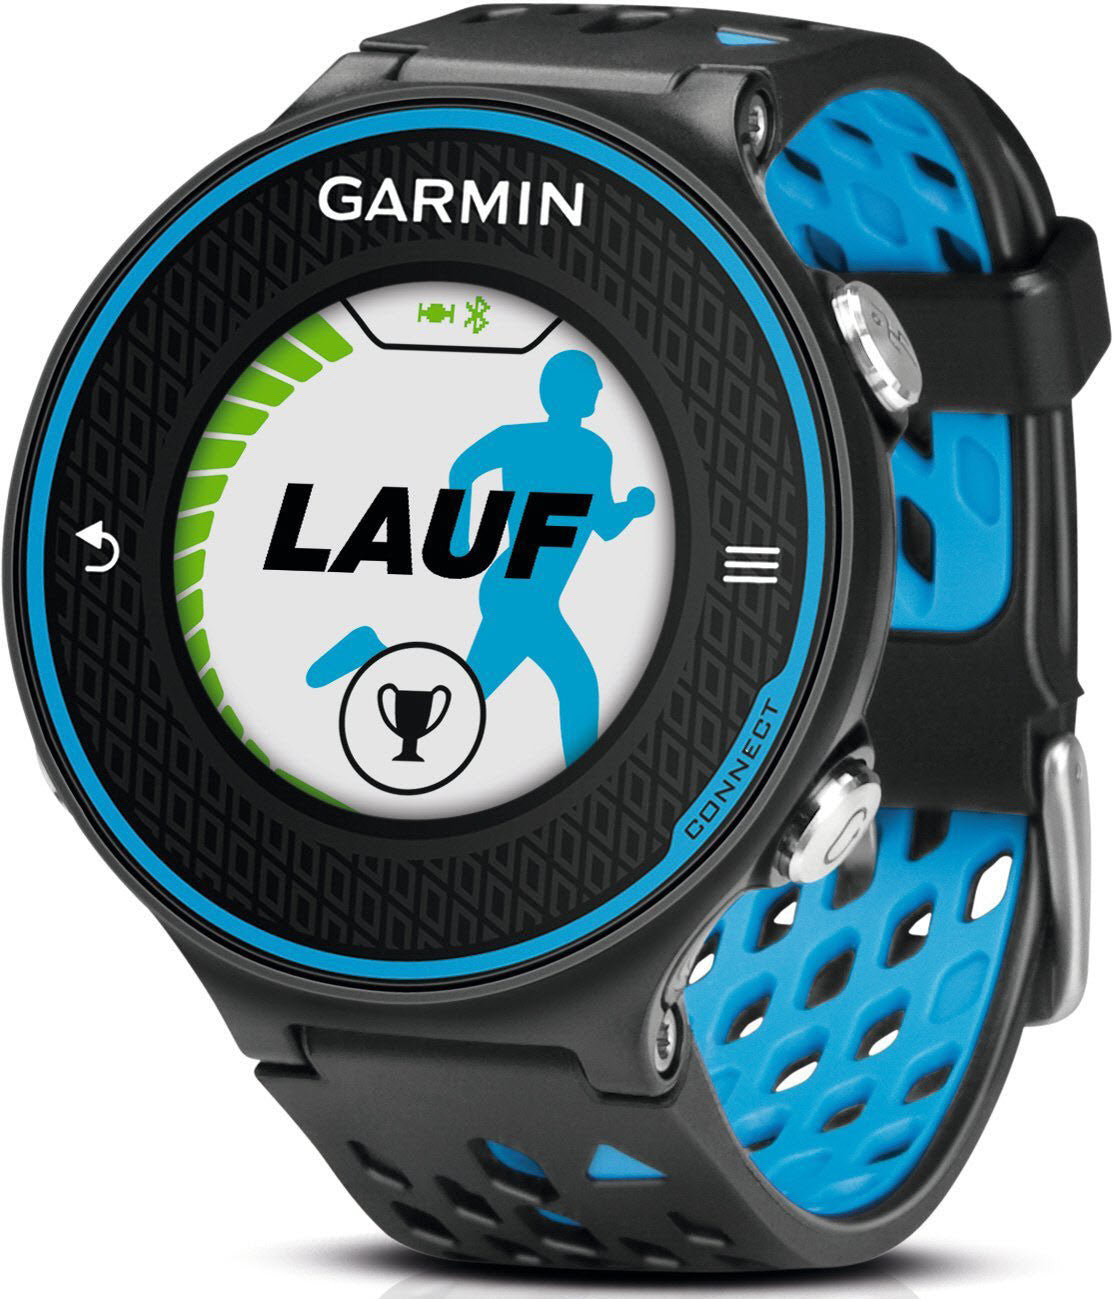 Garmin Watch Forerunner 620 Black Blue + HRM